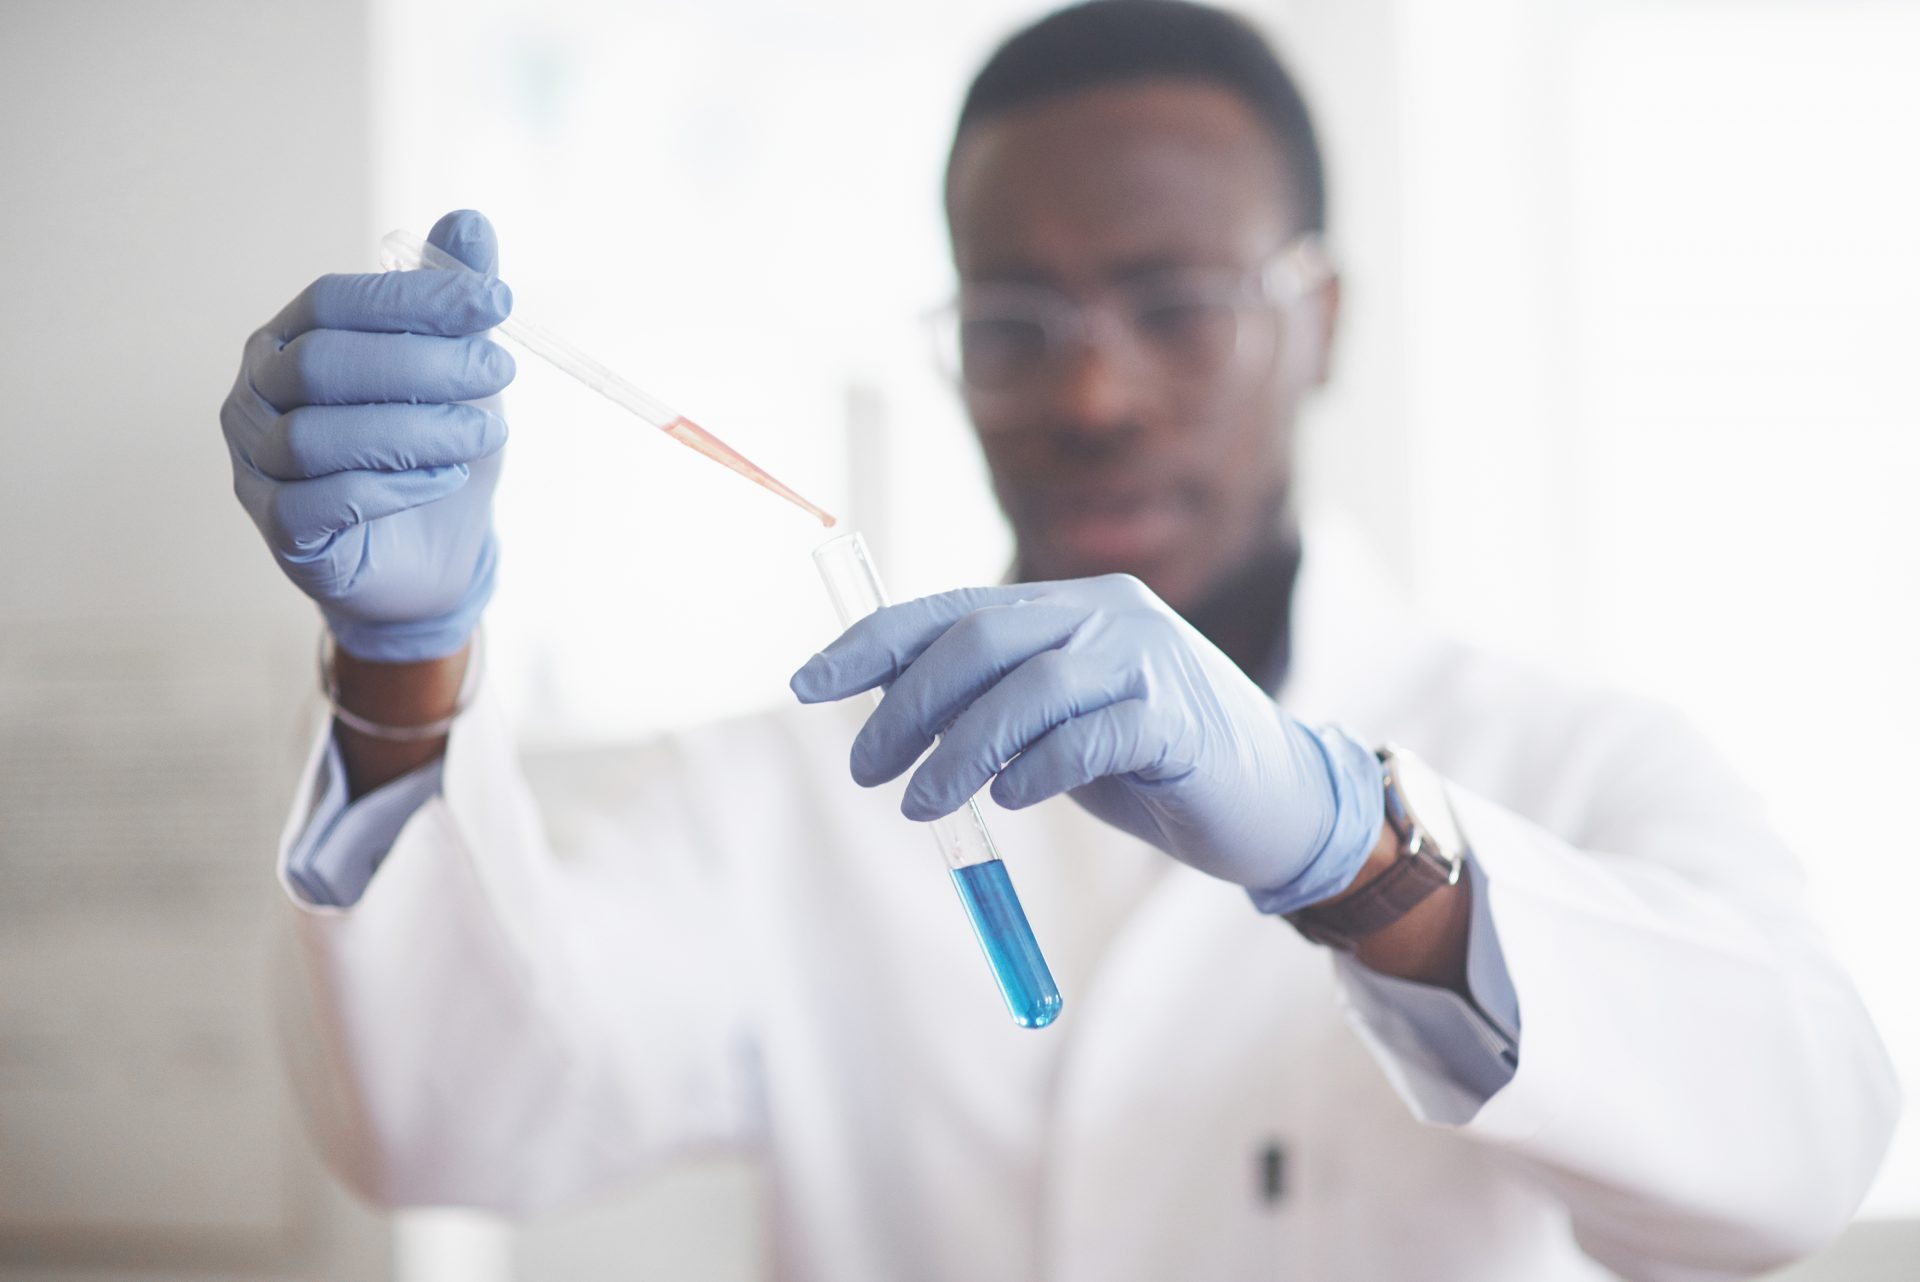 african-american-worker-works-laboratory-conducting-experiments